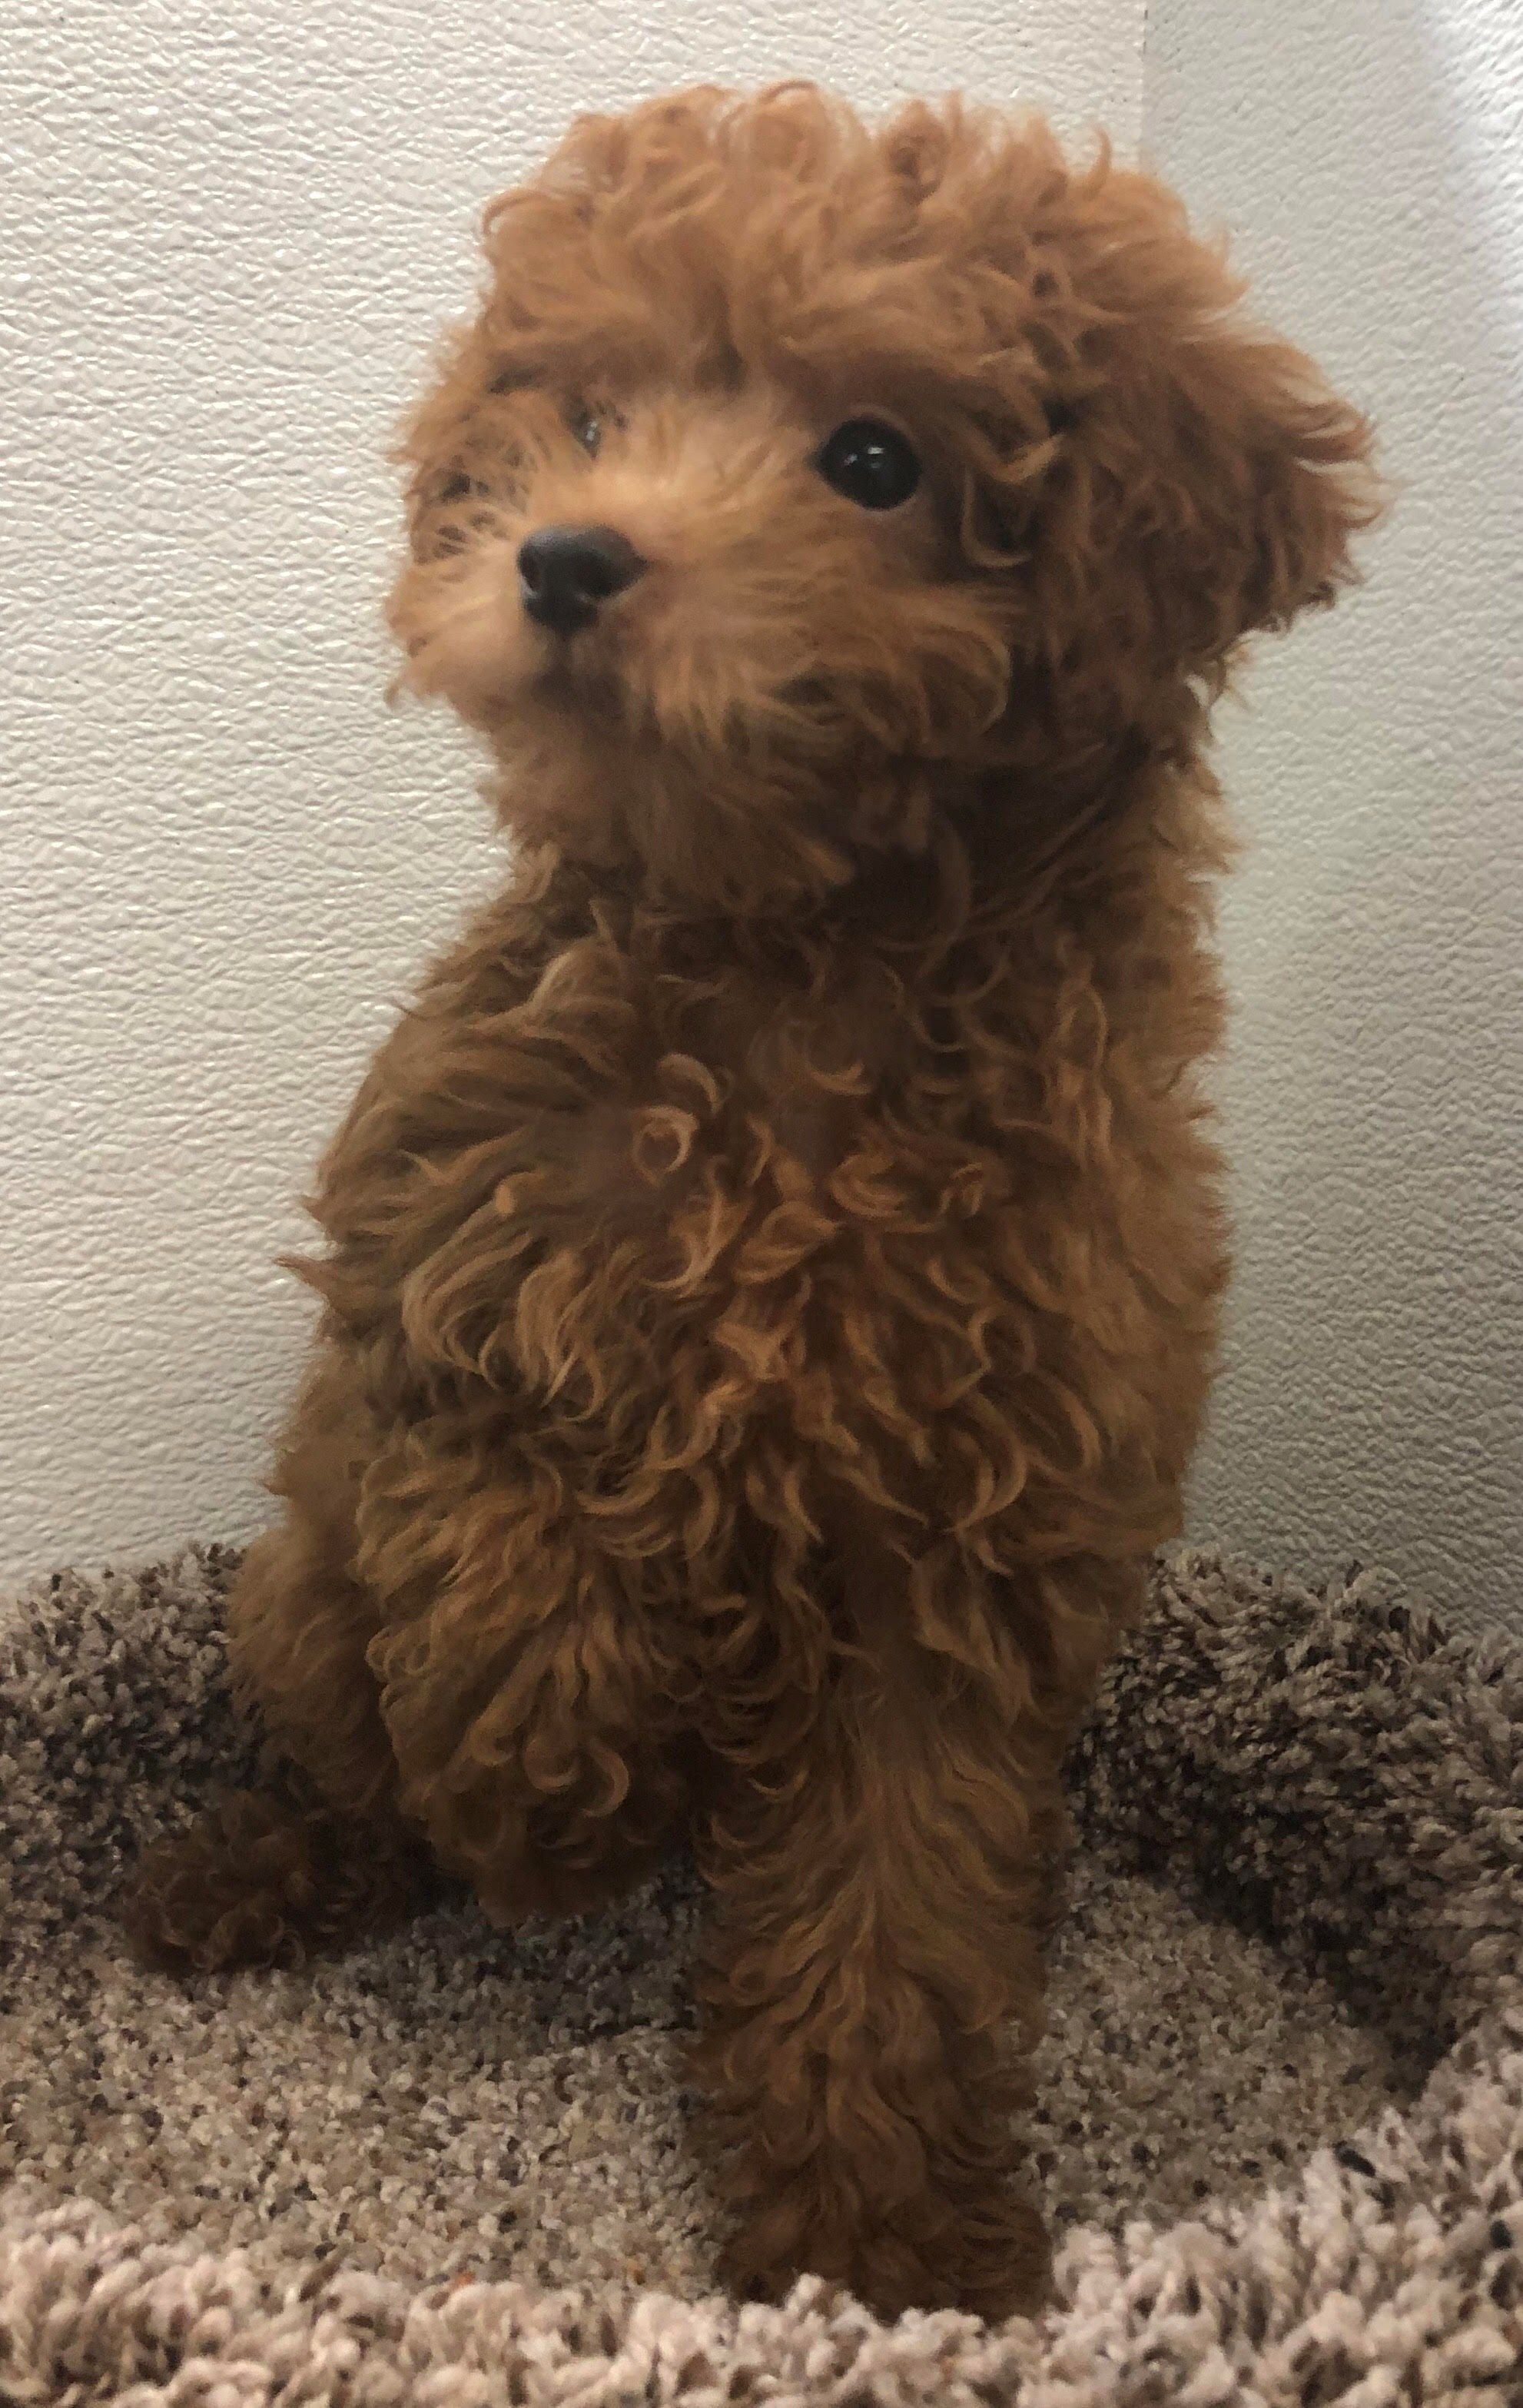 Petland Kansas City Has Poodle Puppies For Sale Check Out All Our